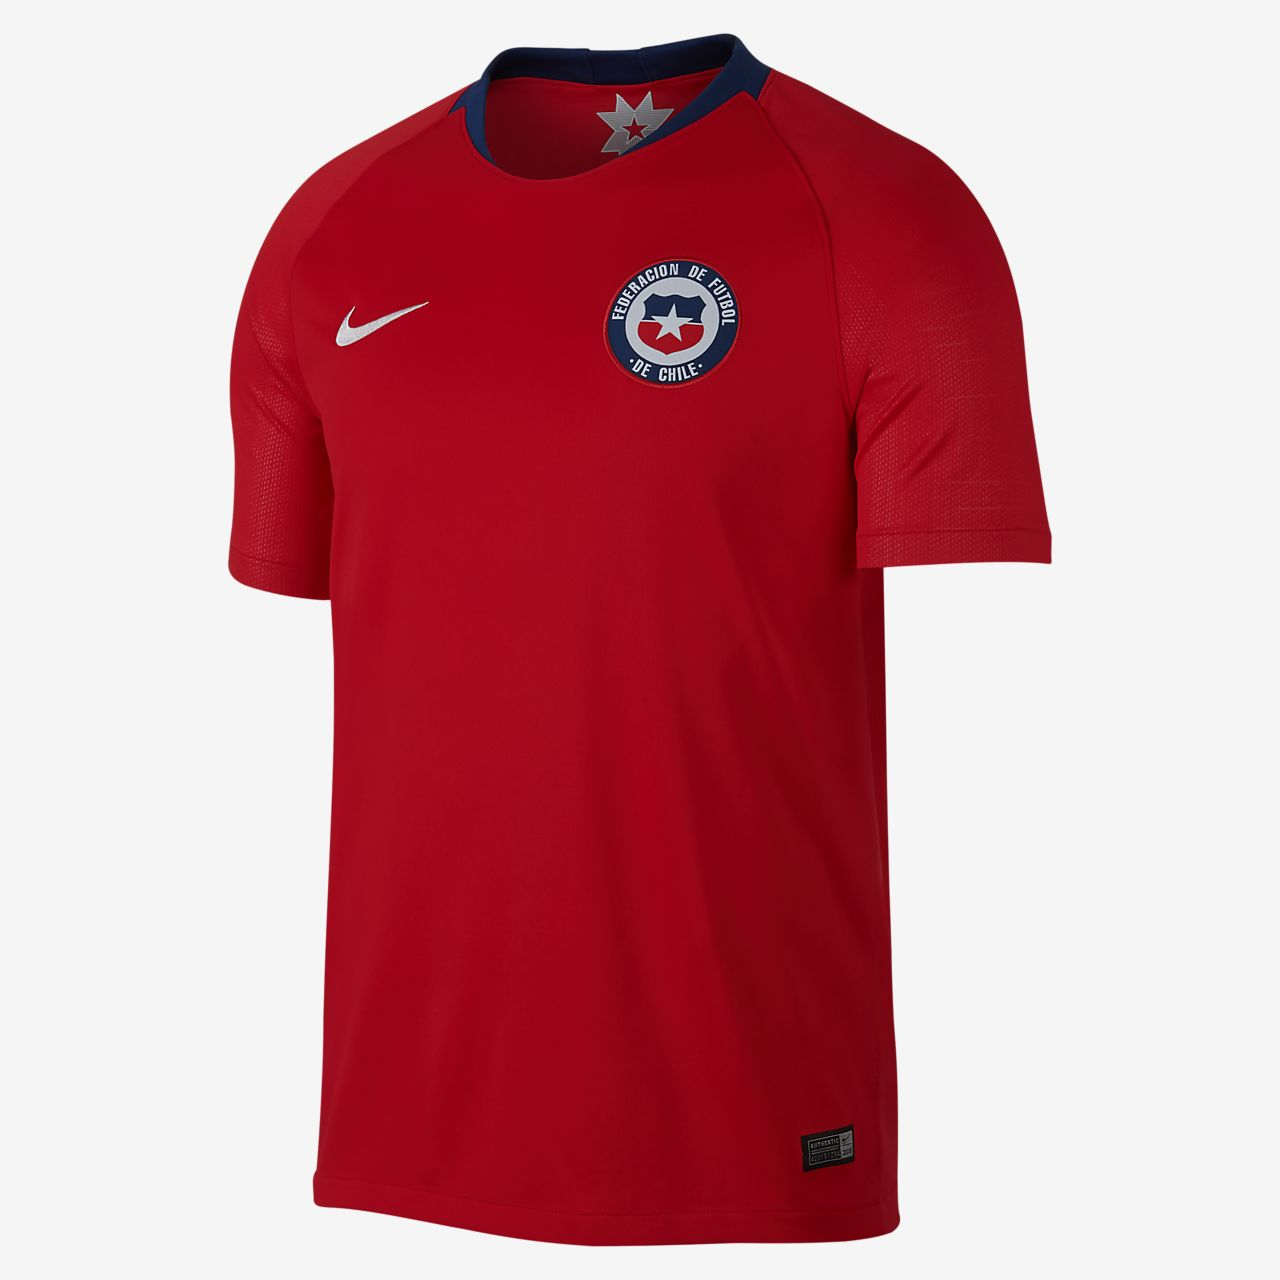 2018 Chile Stadium Home Men's Football Shirt